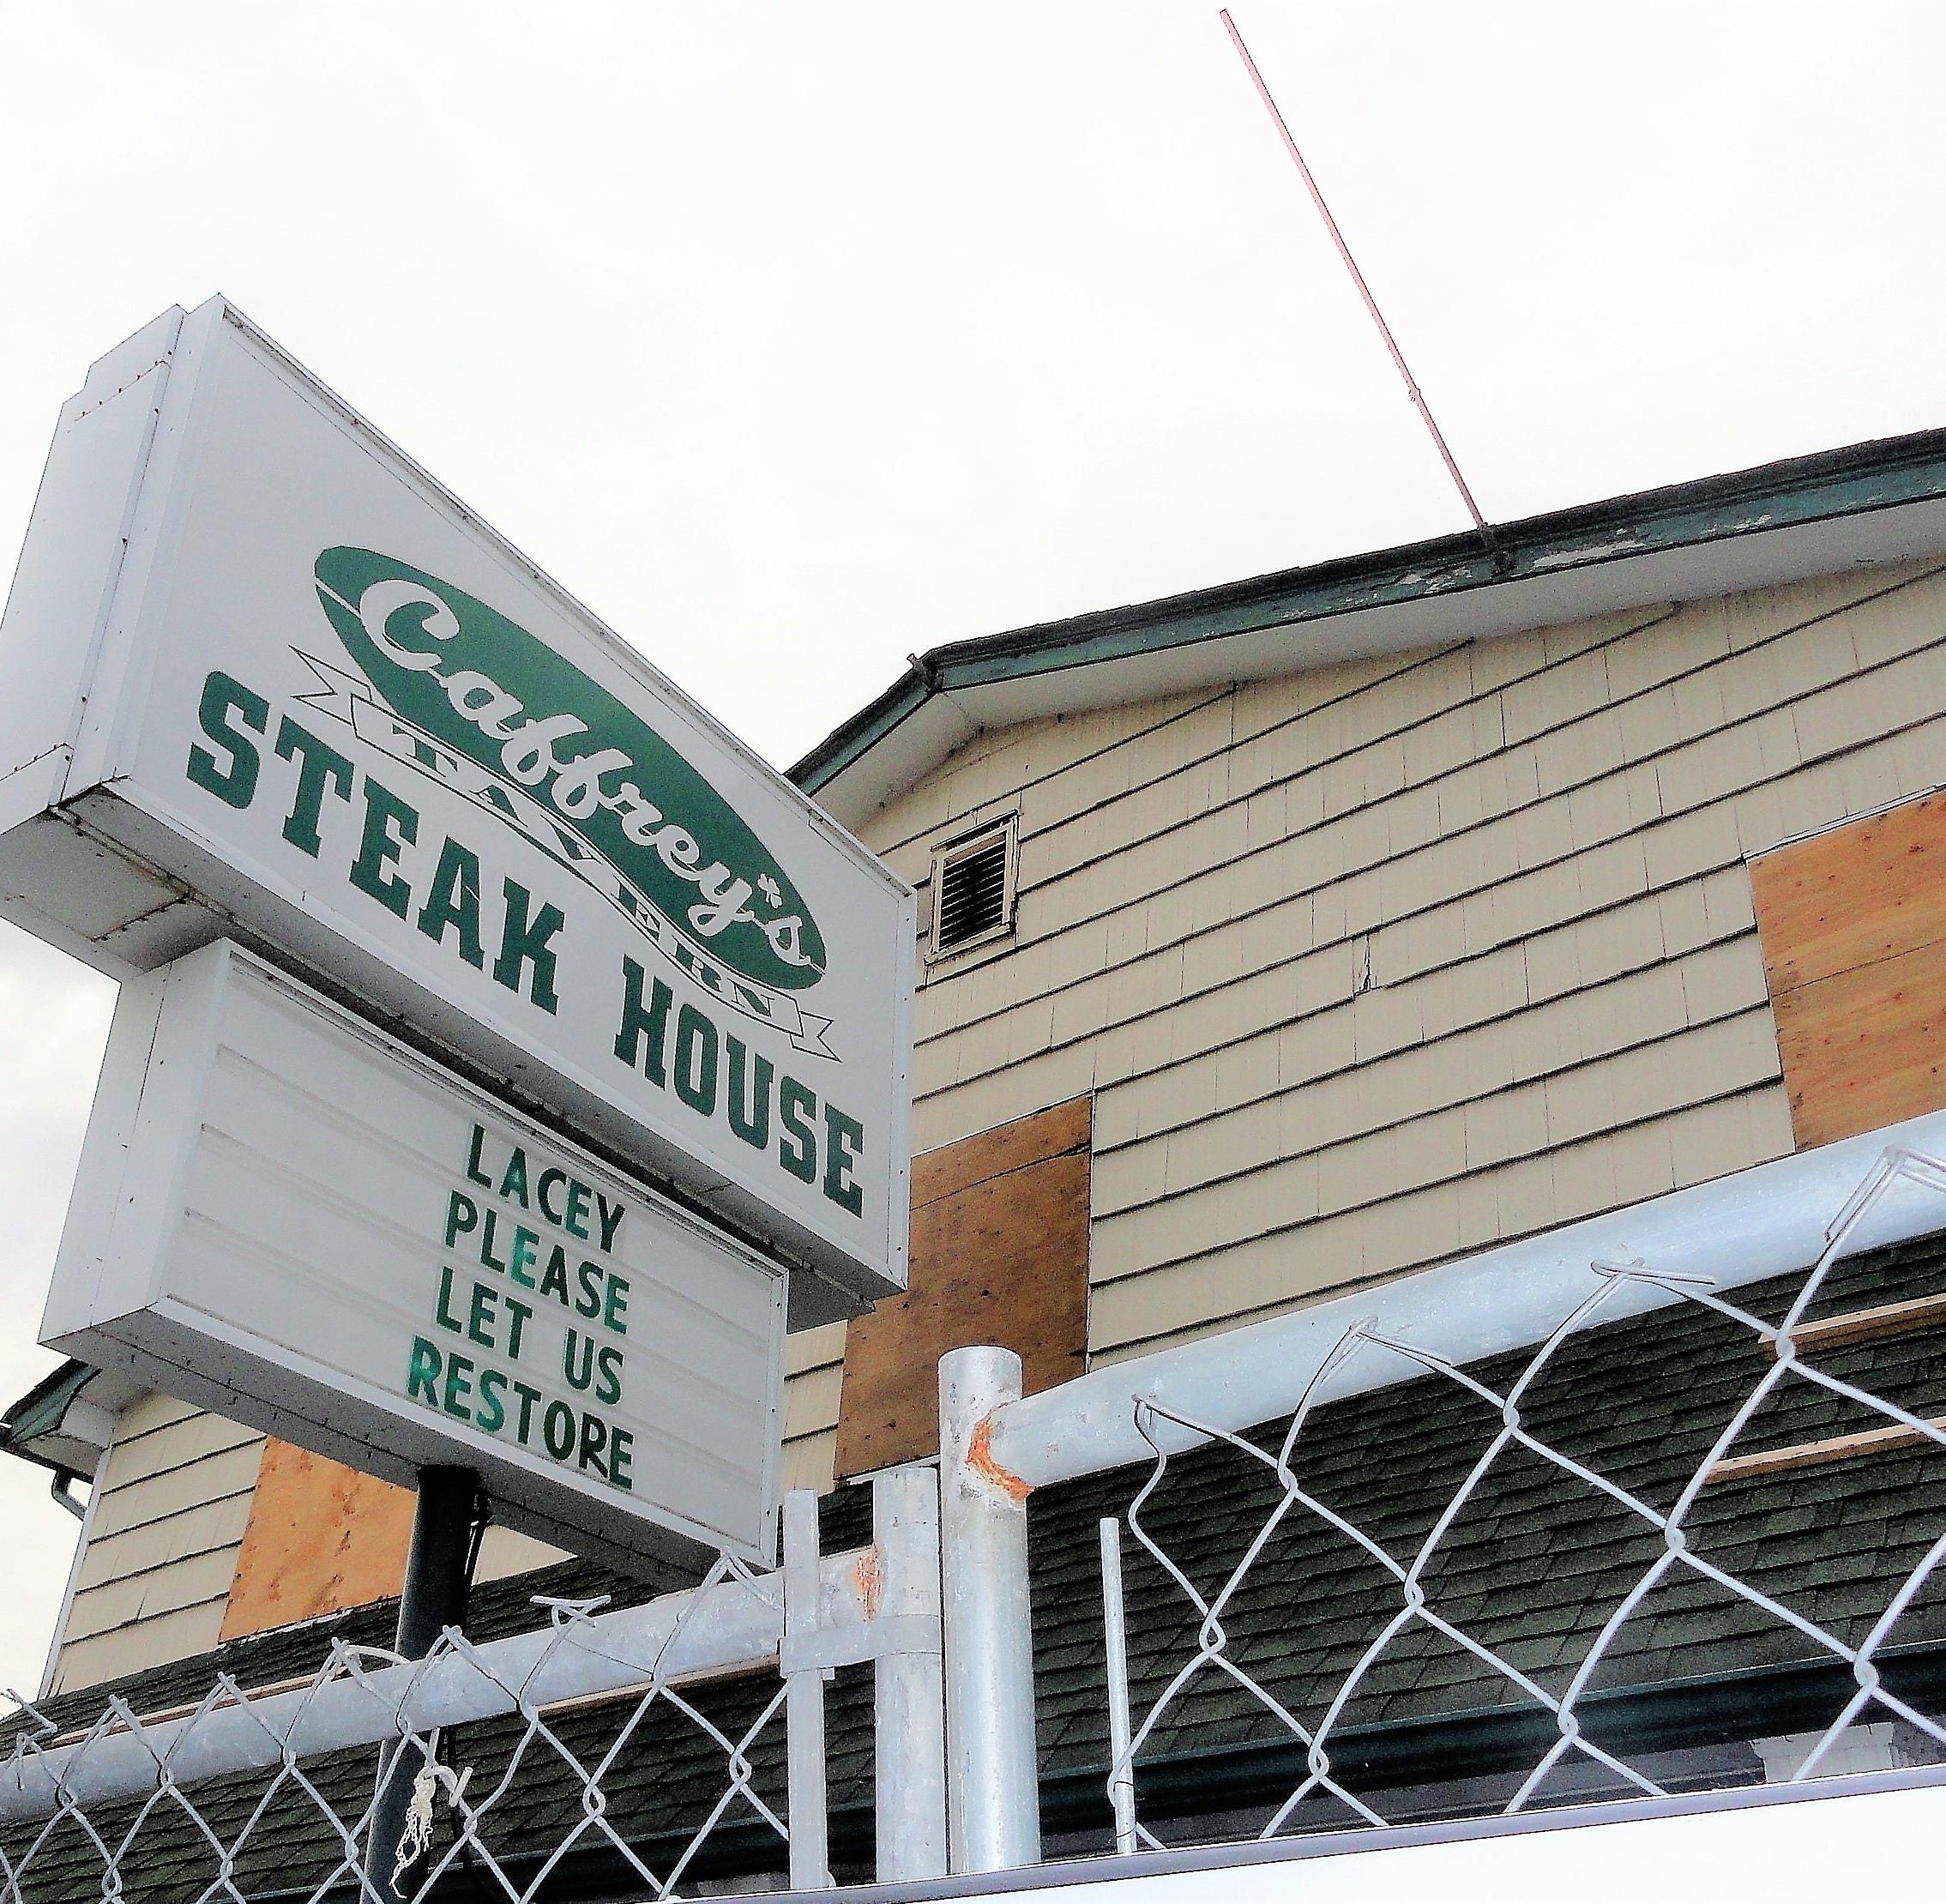 Caffrey's gets OK to rebuild in Lacey after devastating fire